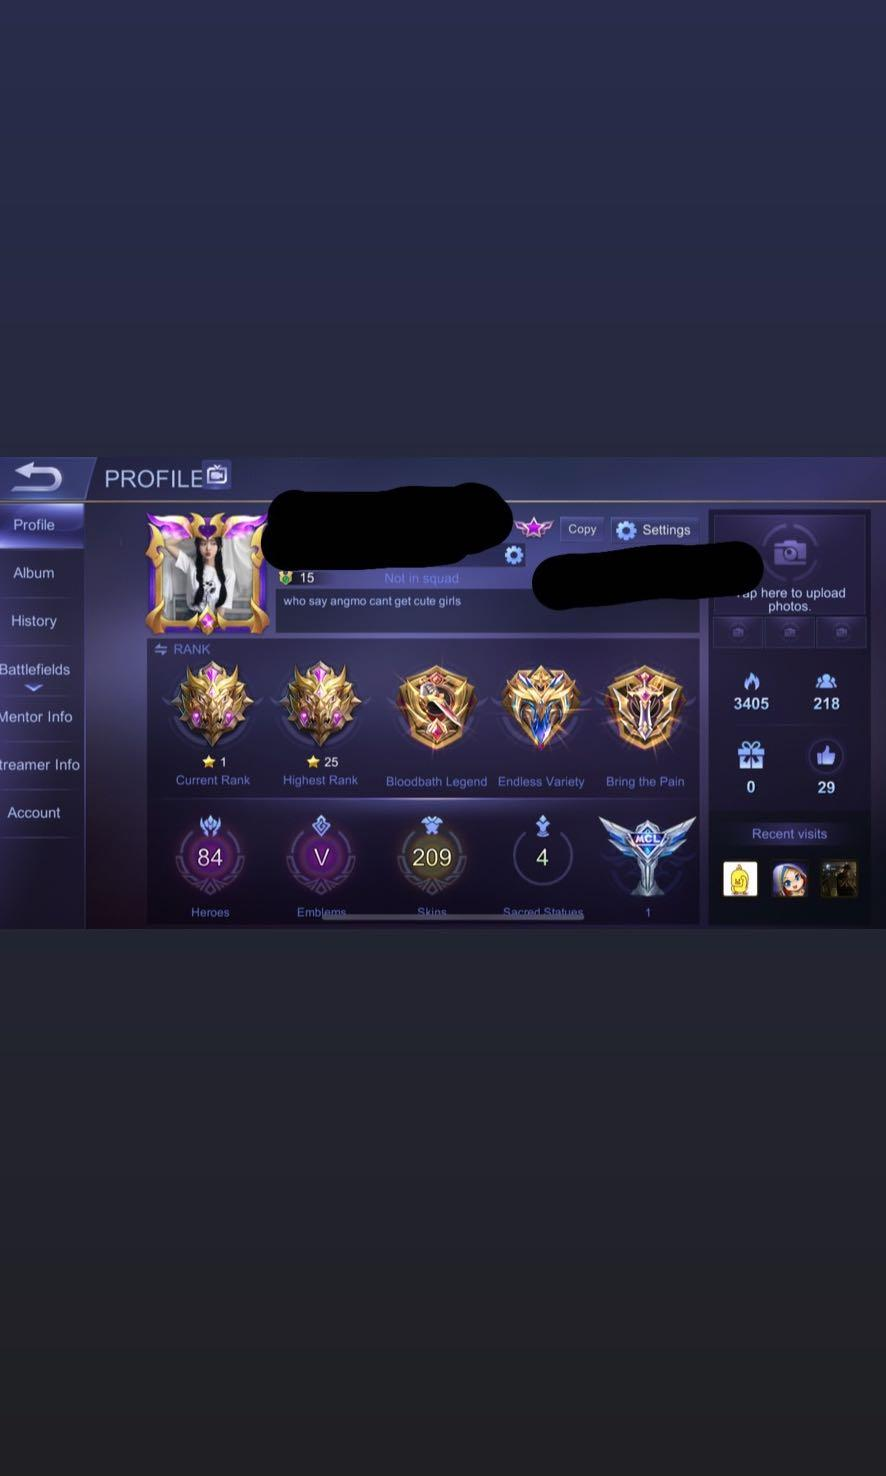 mobile legend account, Toys u0026 Games, Video Gaming, Video